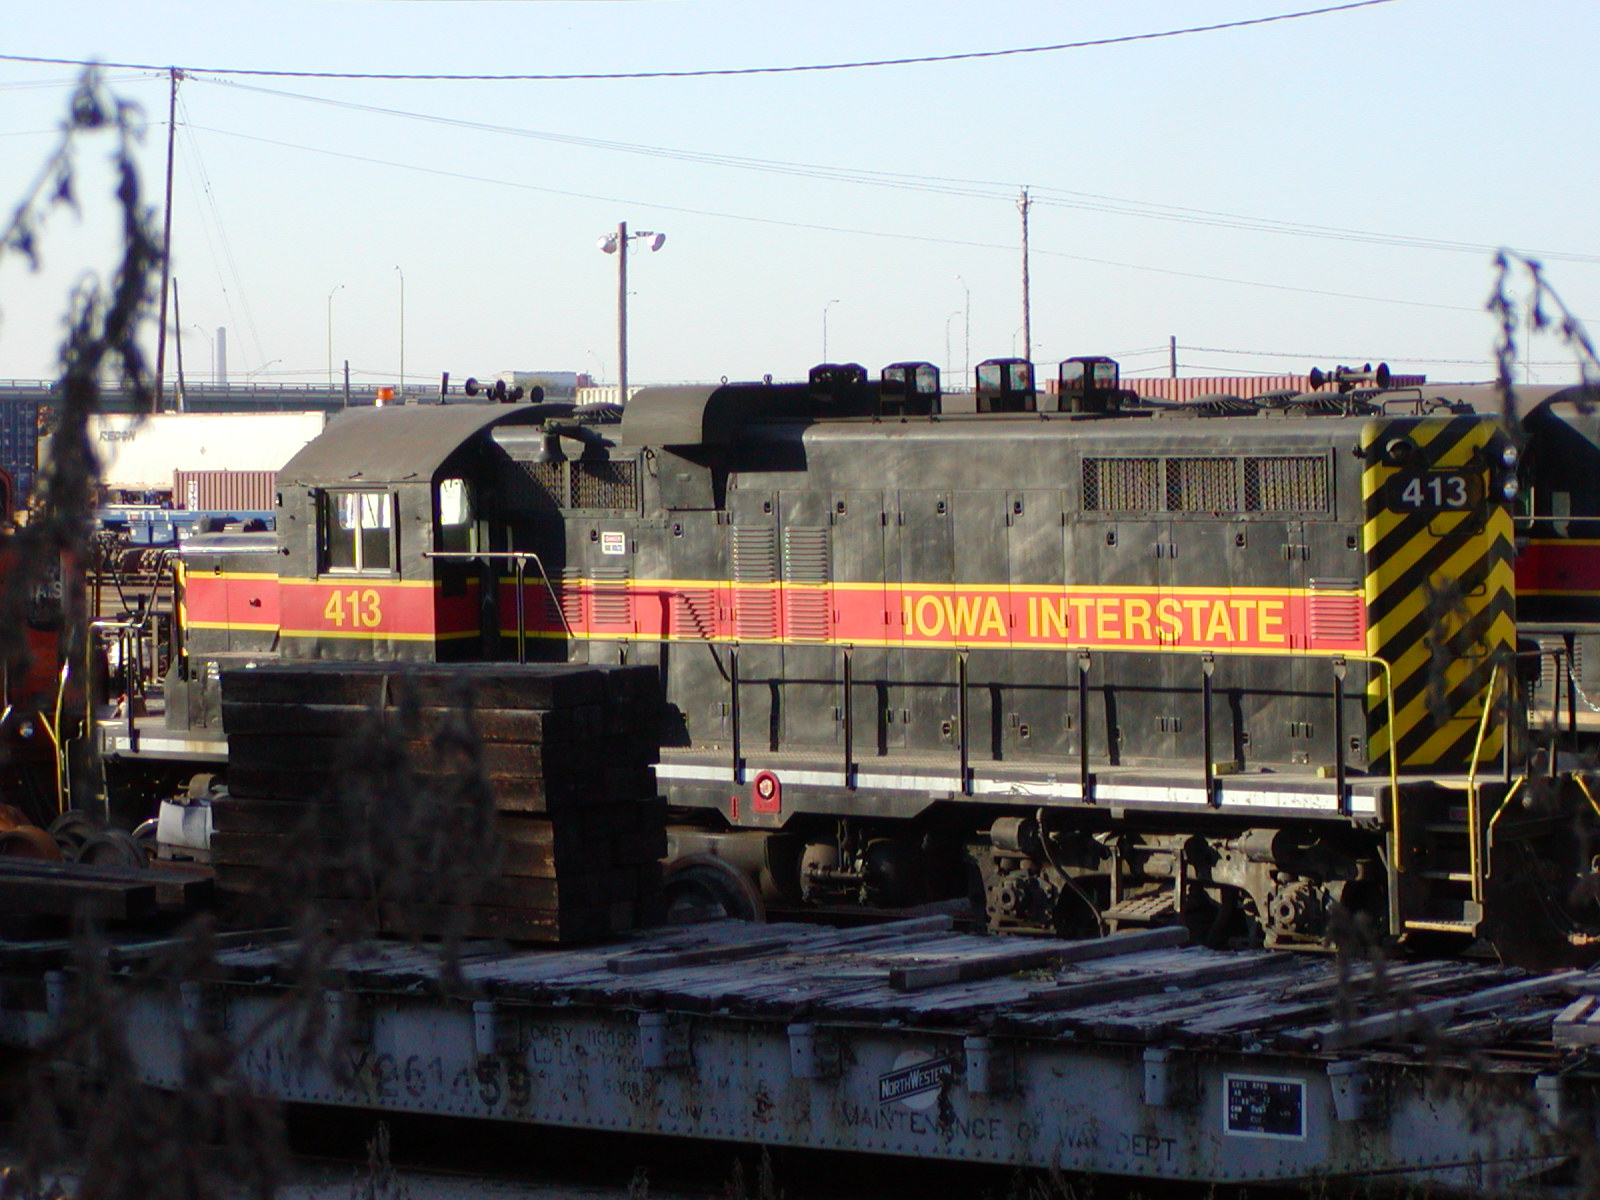 IAIS 413 at Council Bluffs, IA on 02-Oct-2001